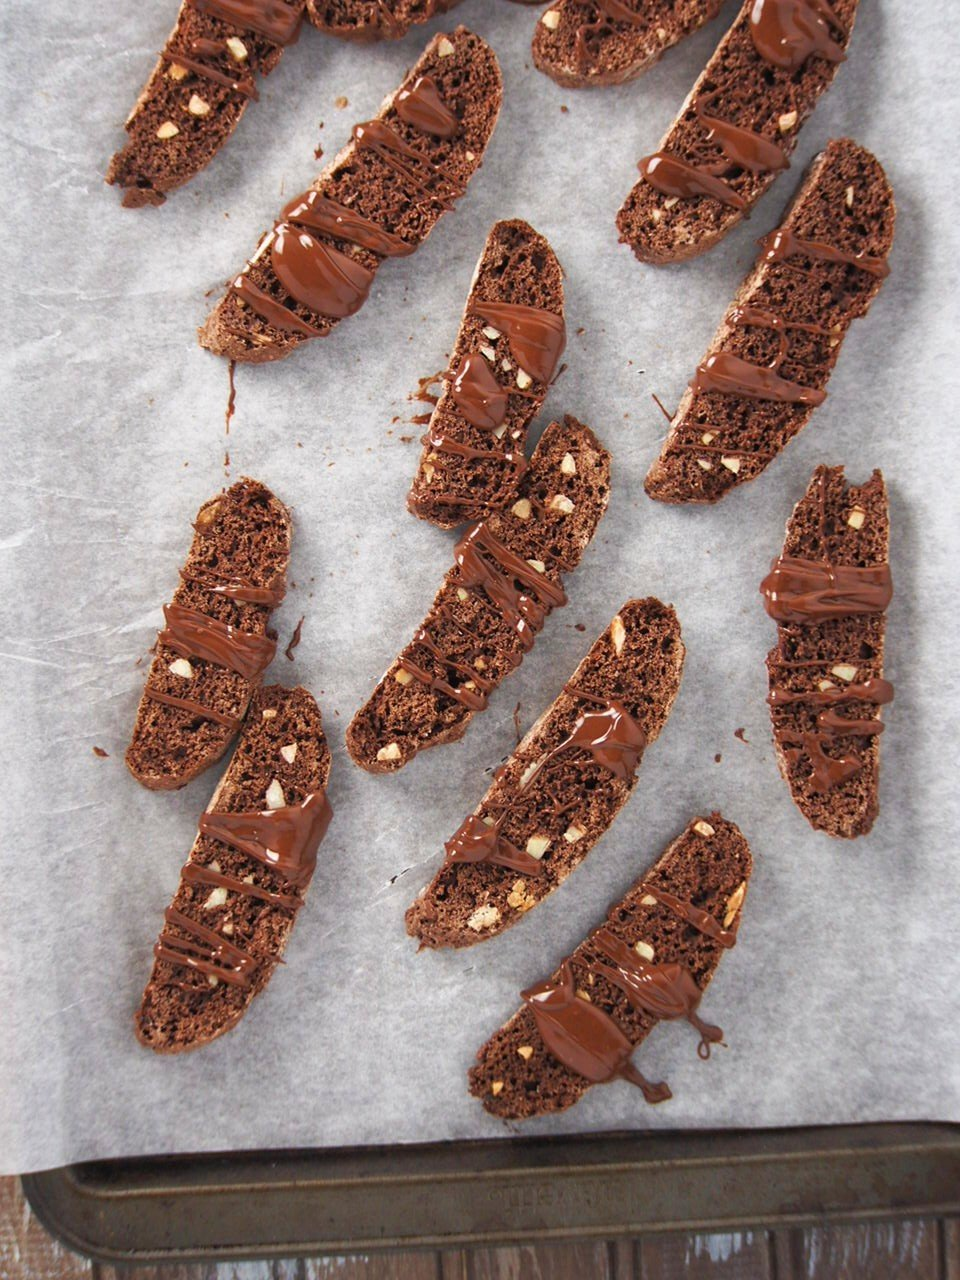 The glazed almond chocolate biscotti on a parchment paper.